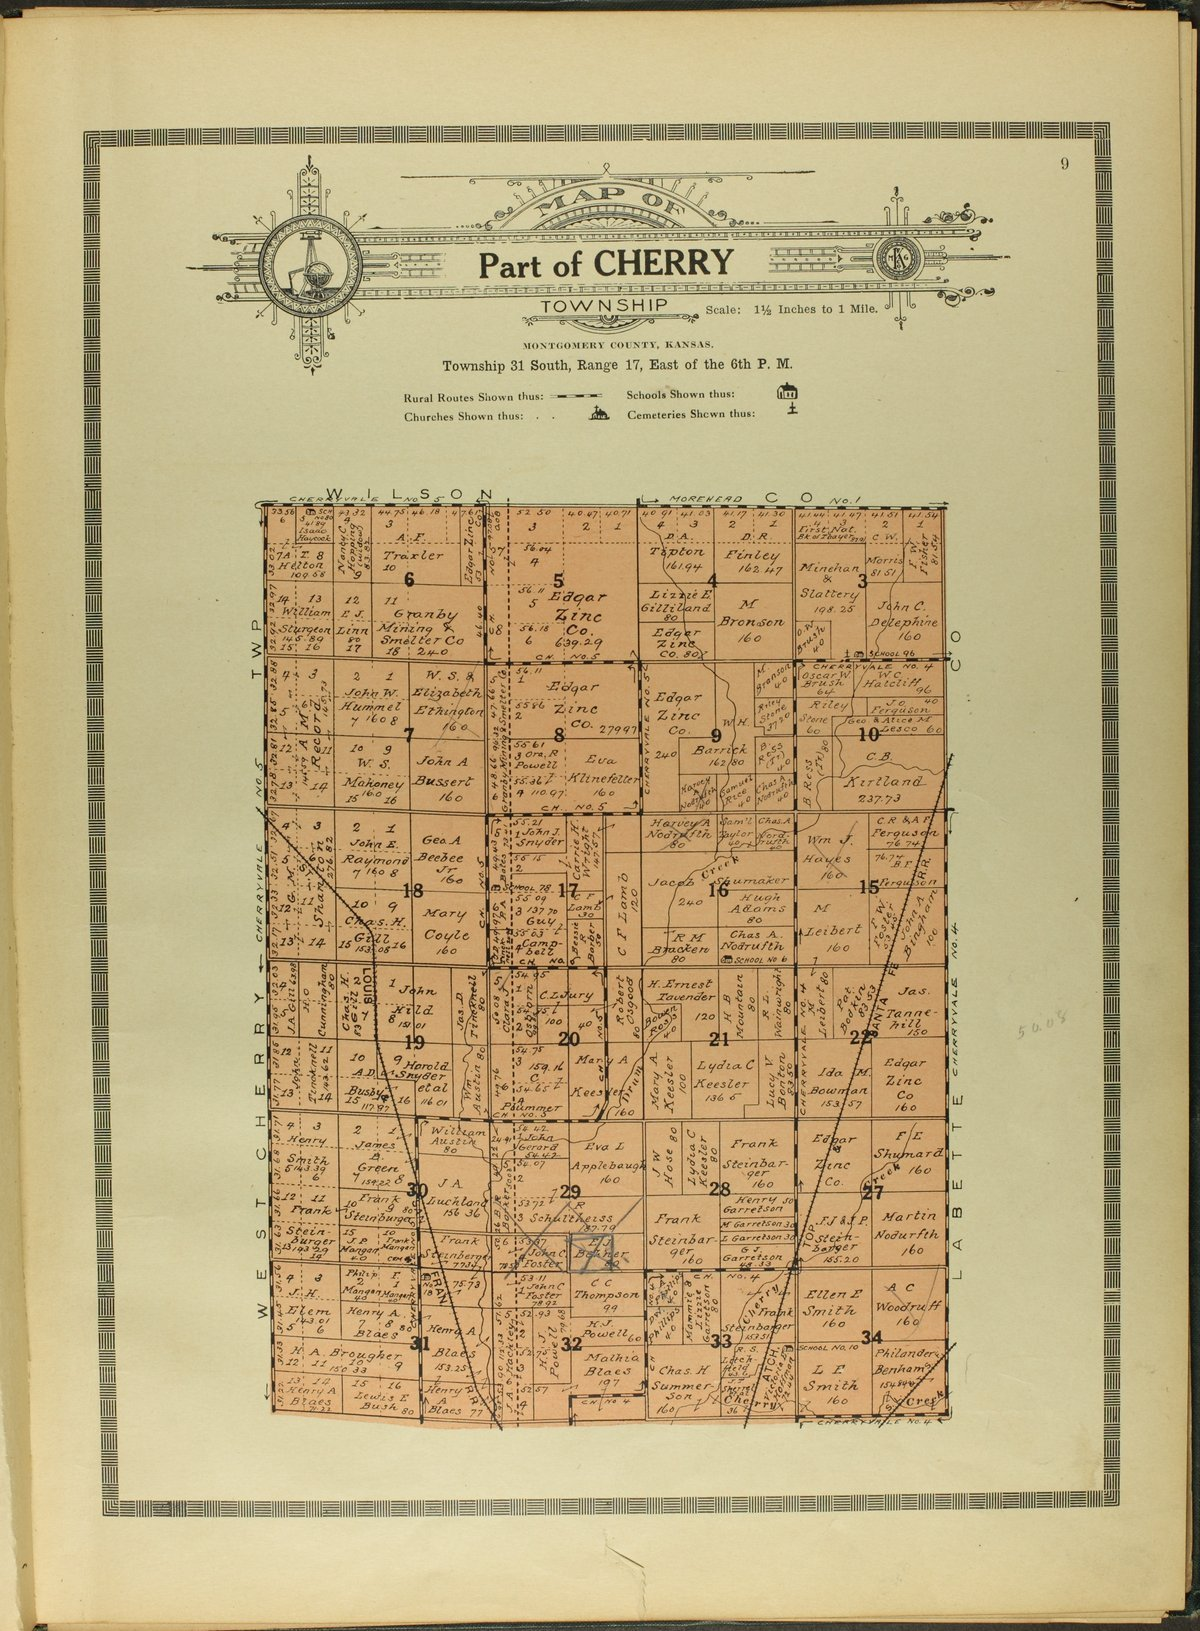 Atlas and plat book of Montgomery County, Kansas - 9